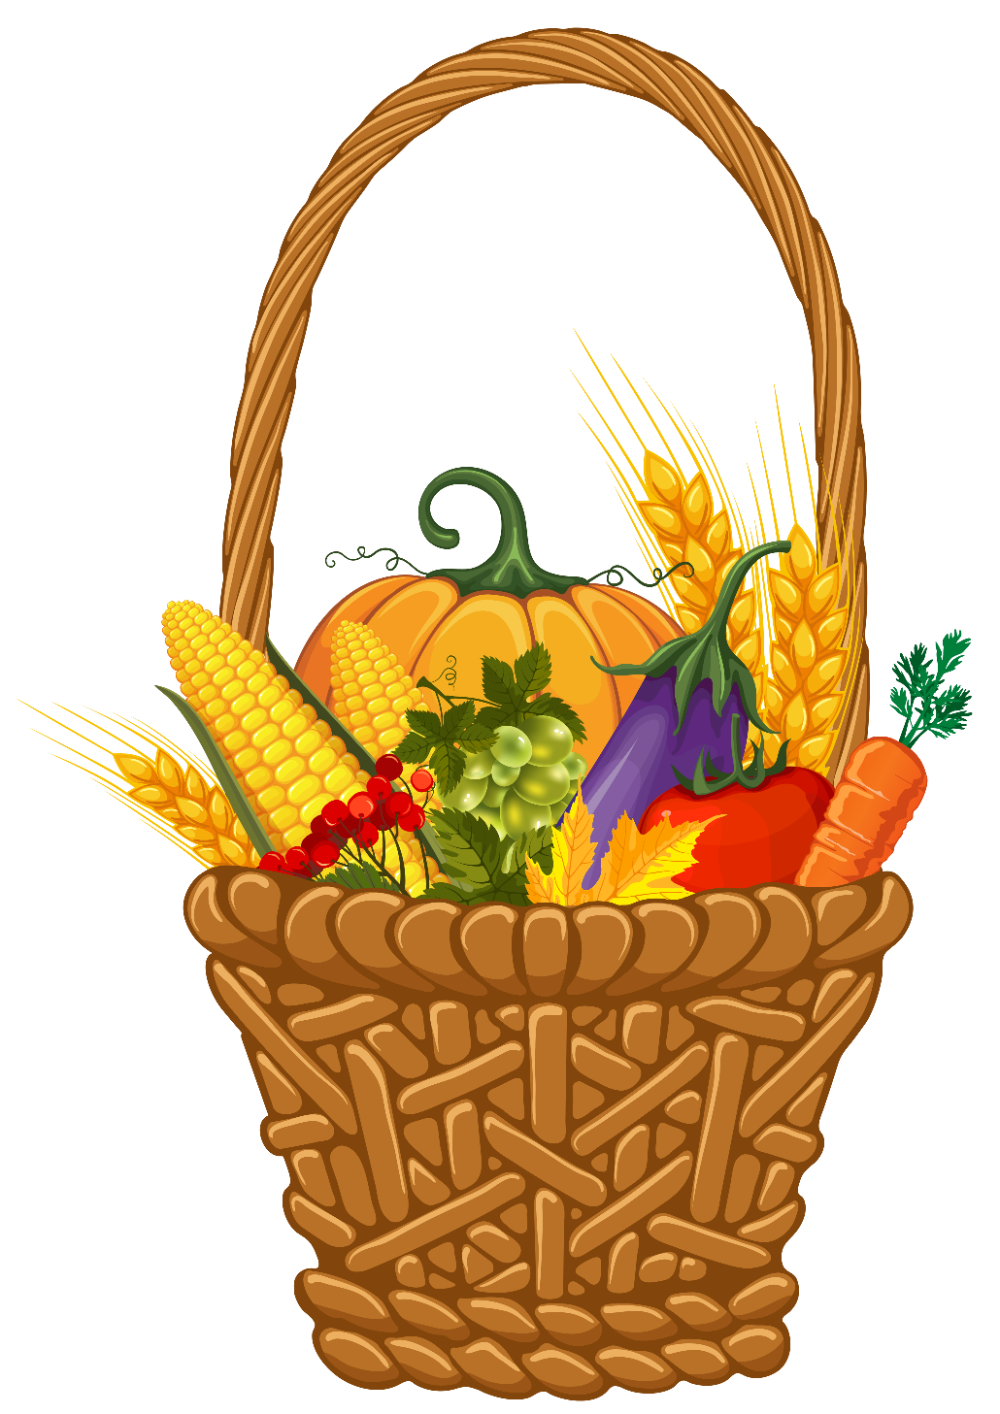 Christmas Food Baskets for the Needy Clip Art in 2020 ...